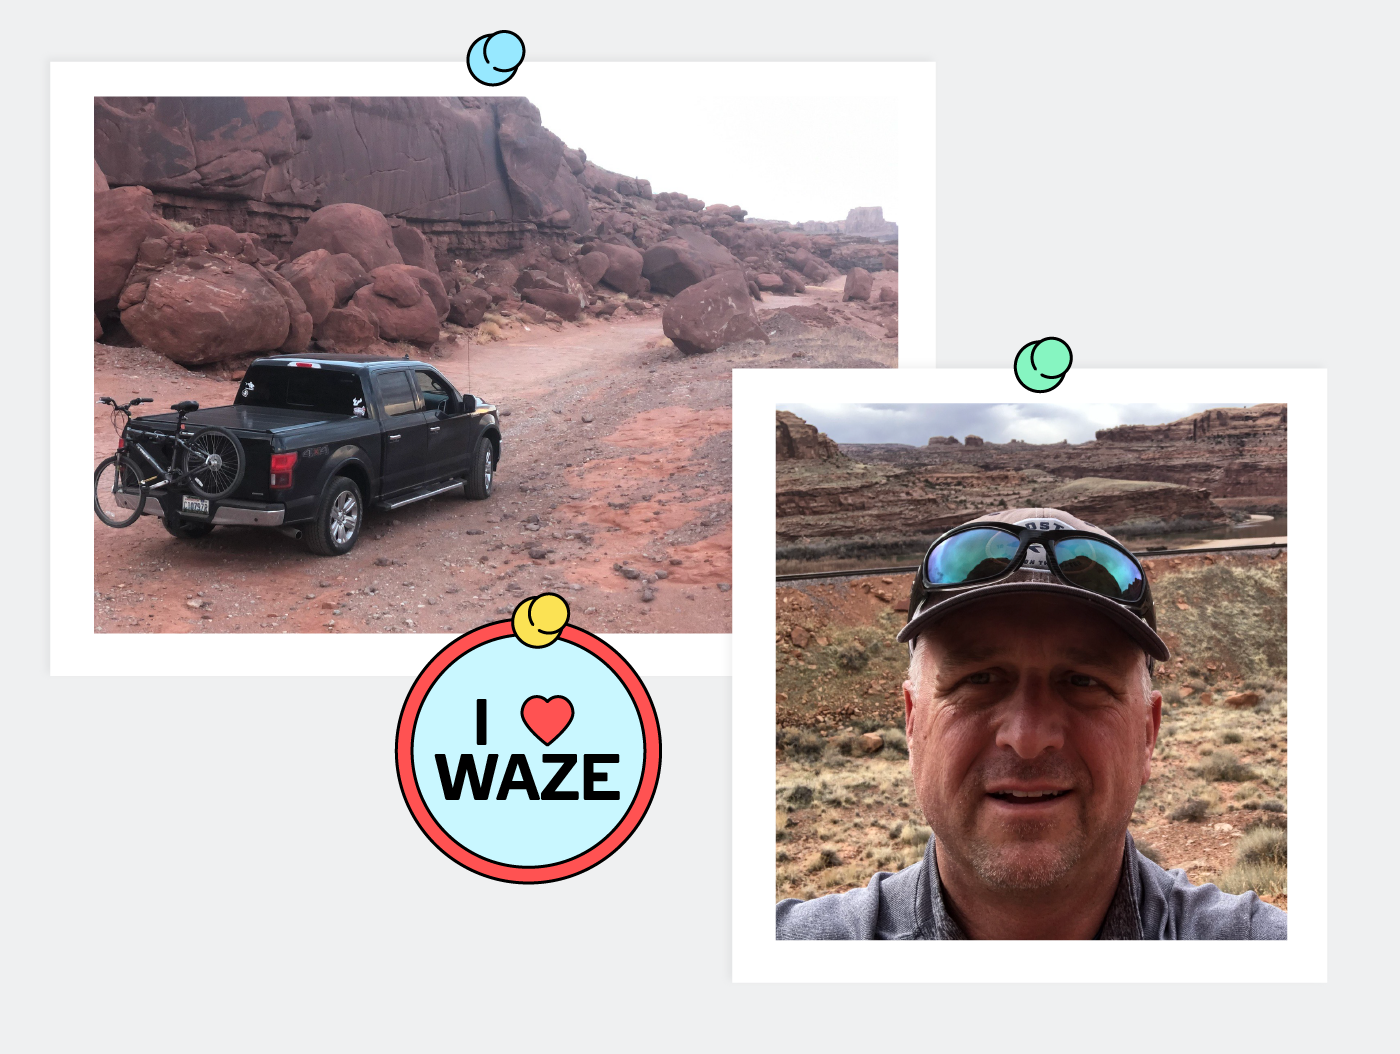 Using Waze feels like playing a game, and dads love to beat the system.